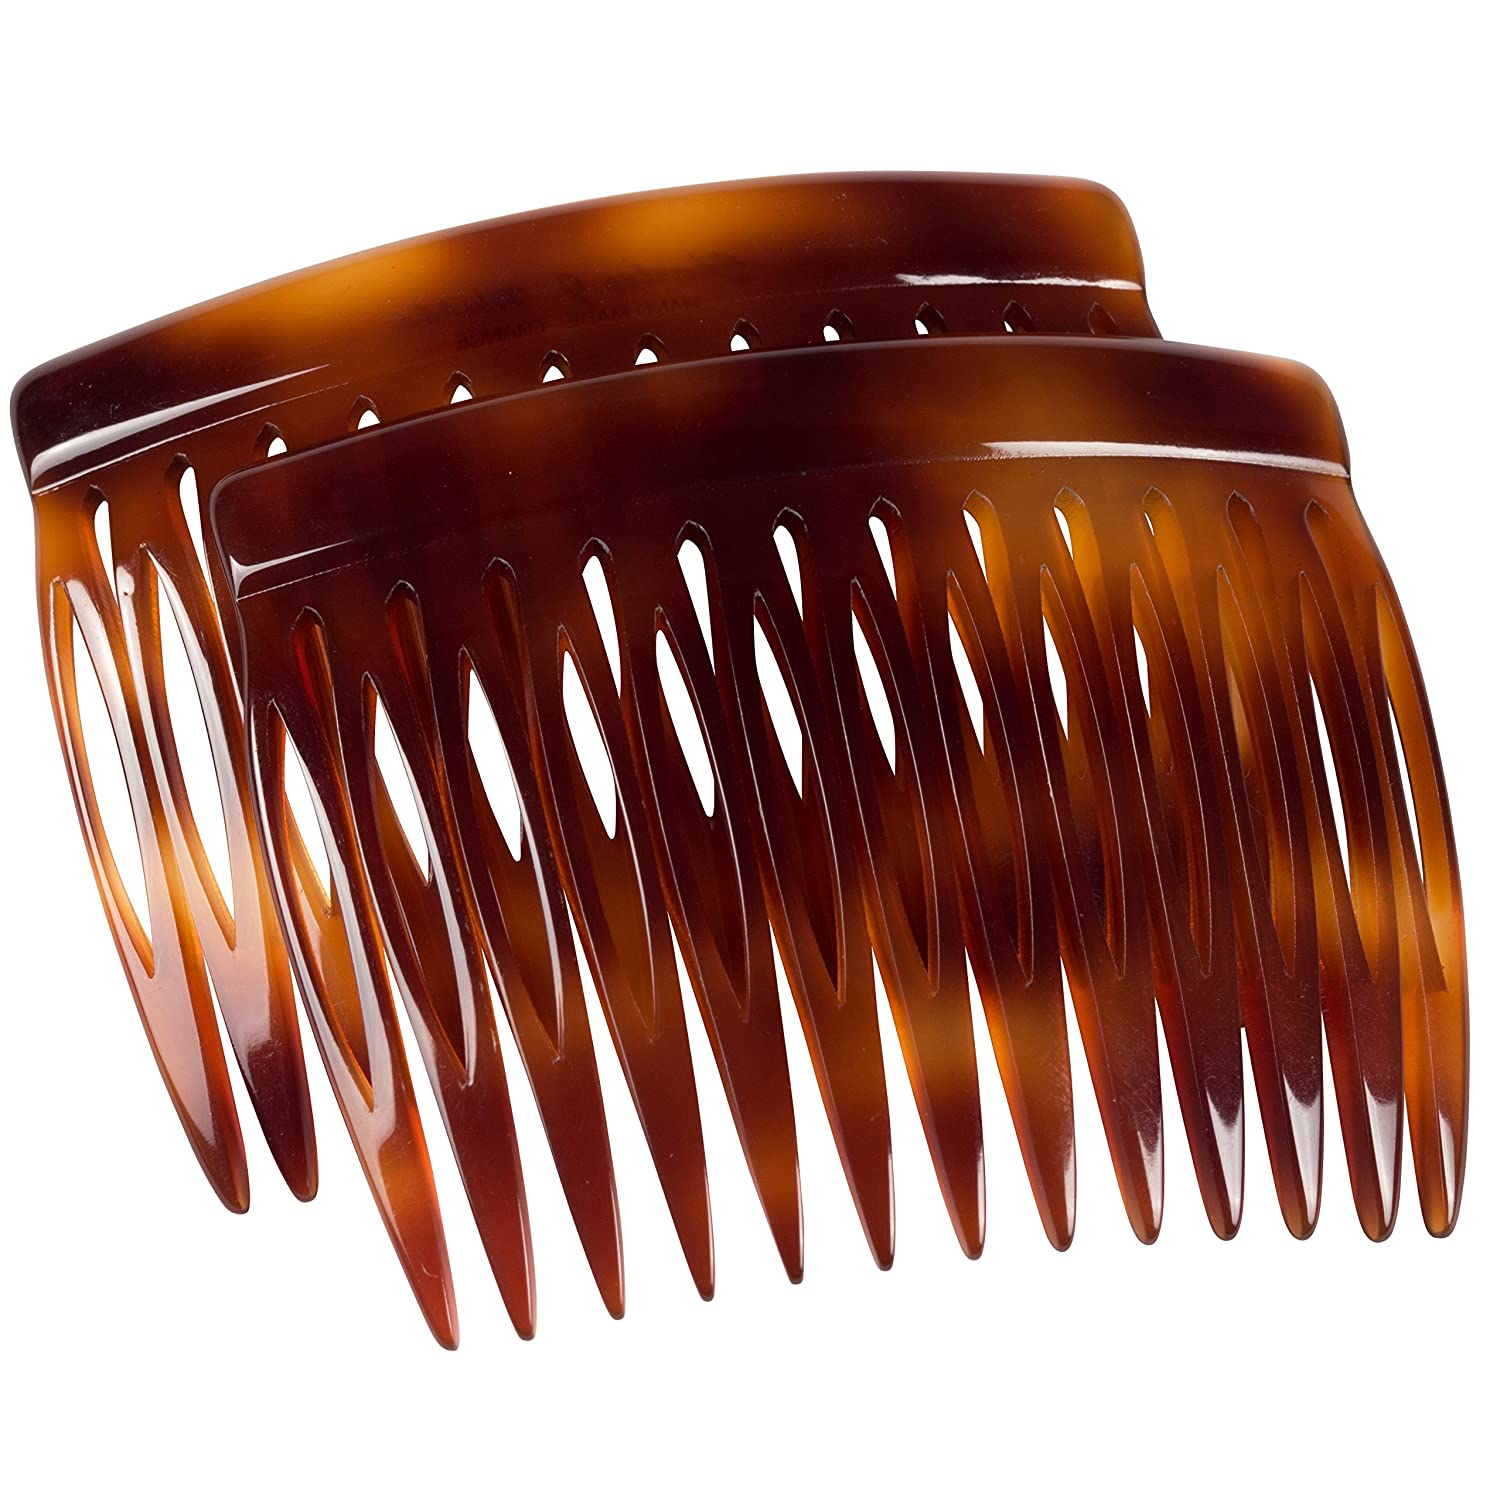 Charles J. Wahba Side Comb (Paired) - 13 Teeth (Mock Tortoise Color) Handmade in France : Decorative Hair Combs : Beauty